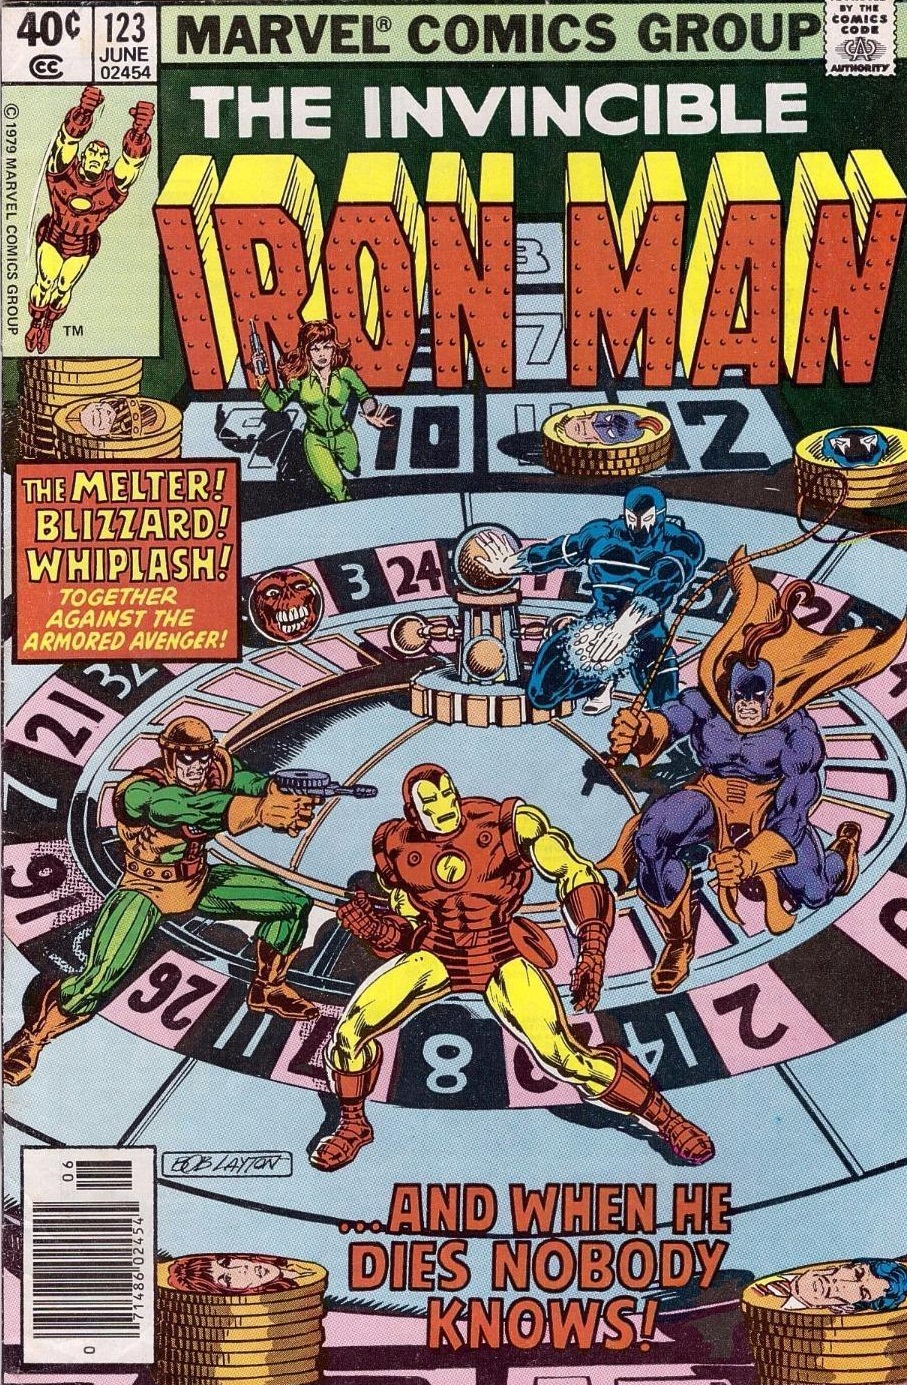 Marvel Comics of the 1980s: 1979 - Anatomy of a Cover - Iron Man ...